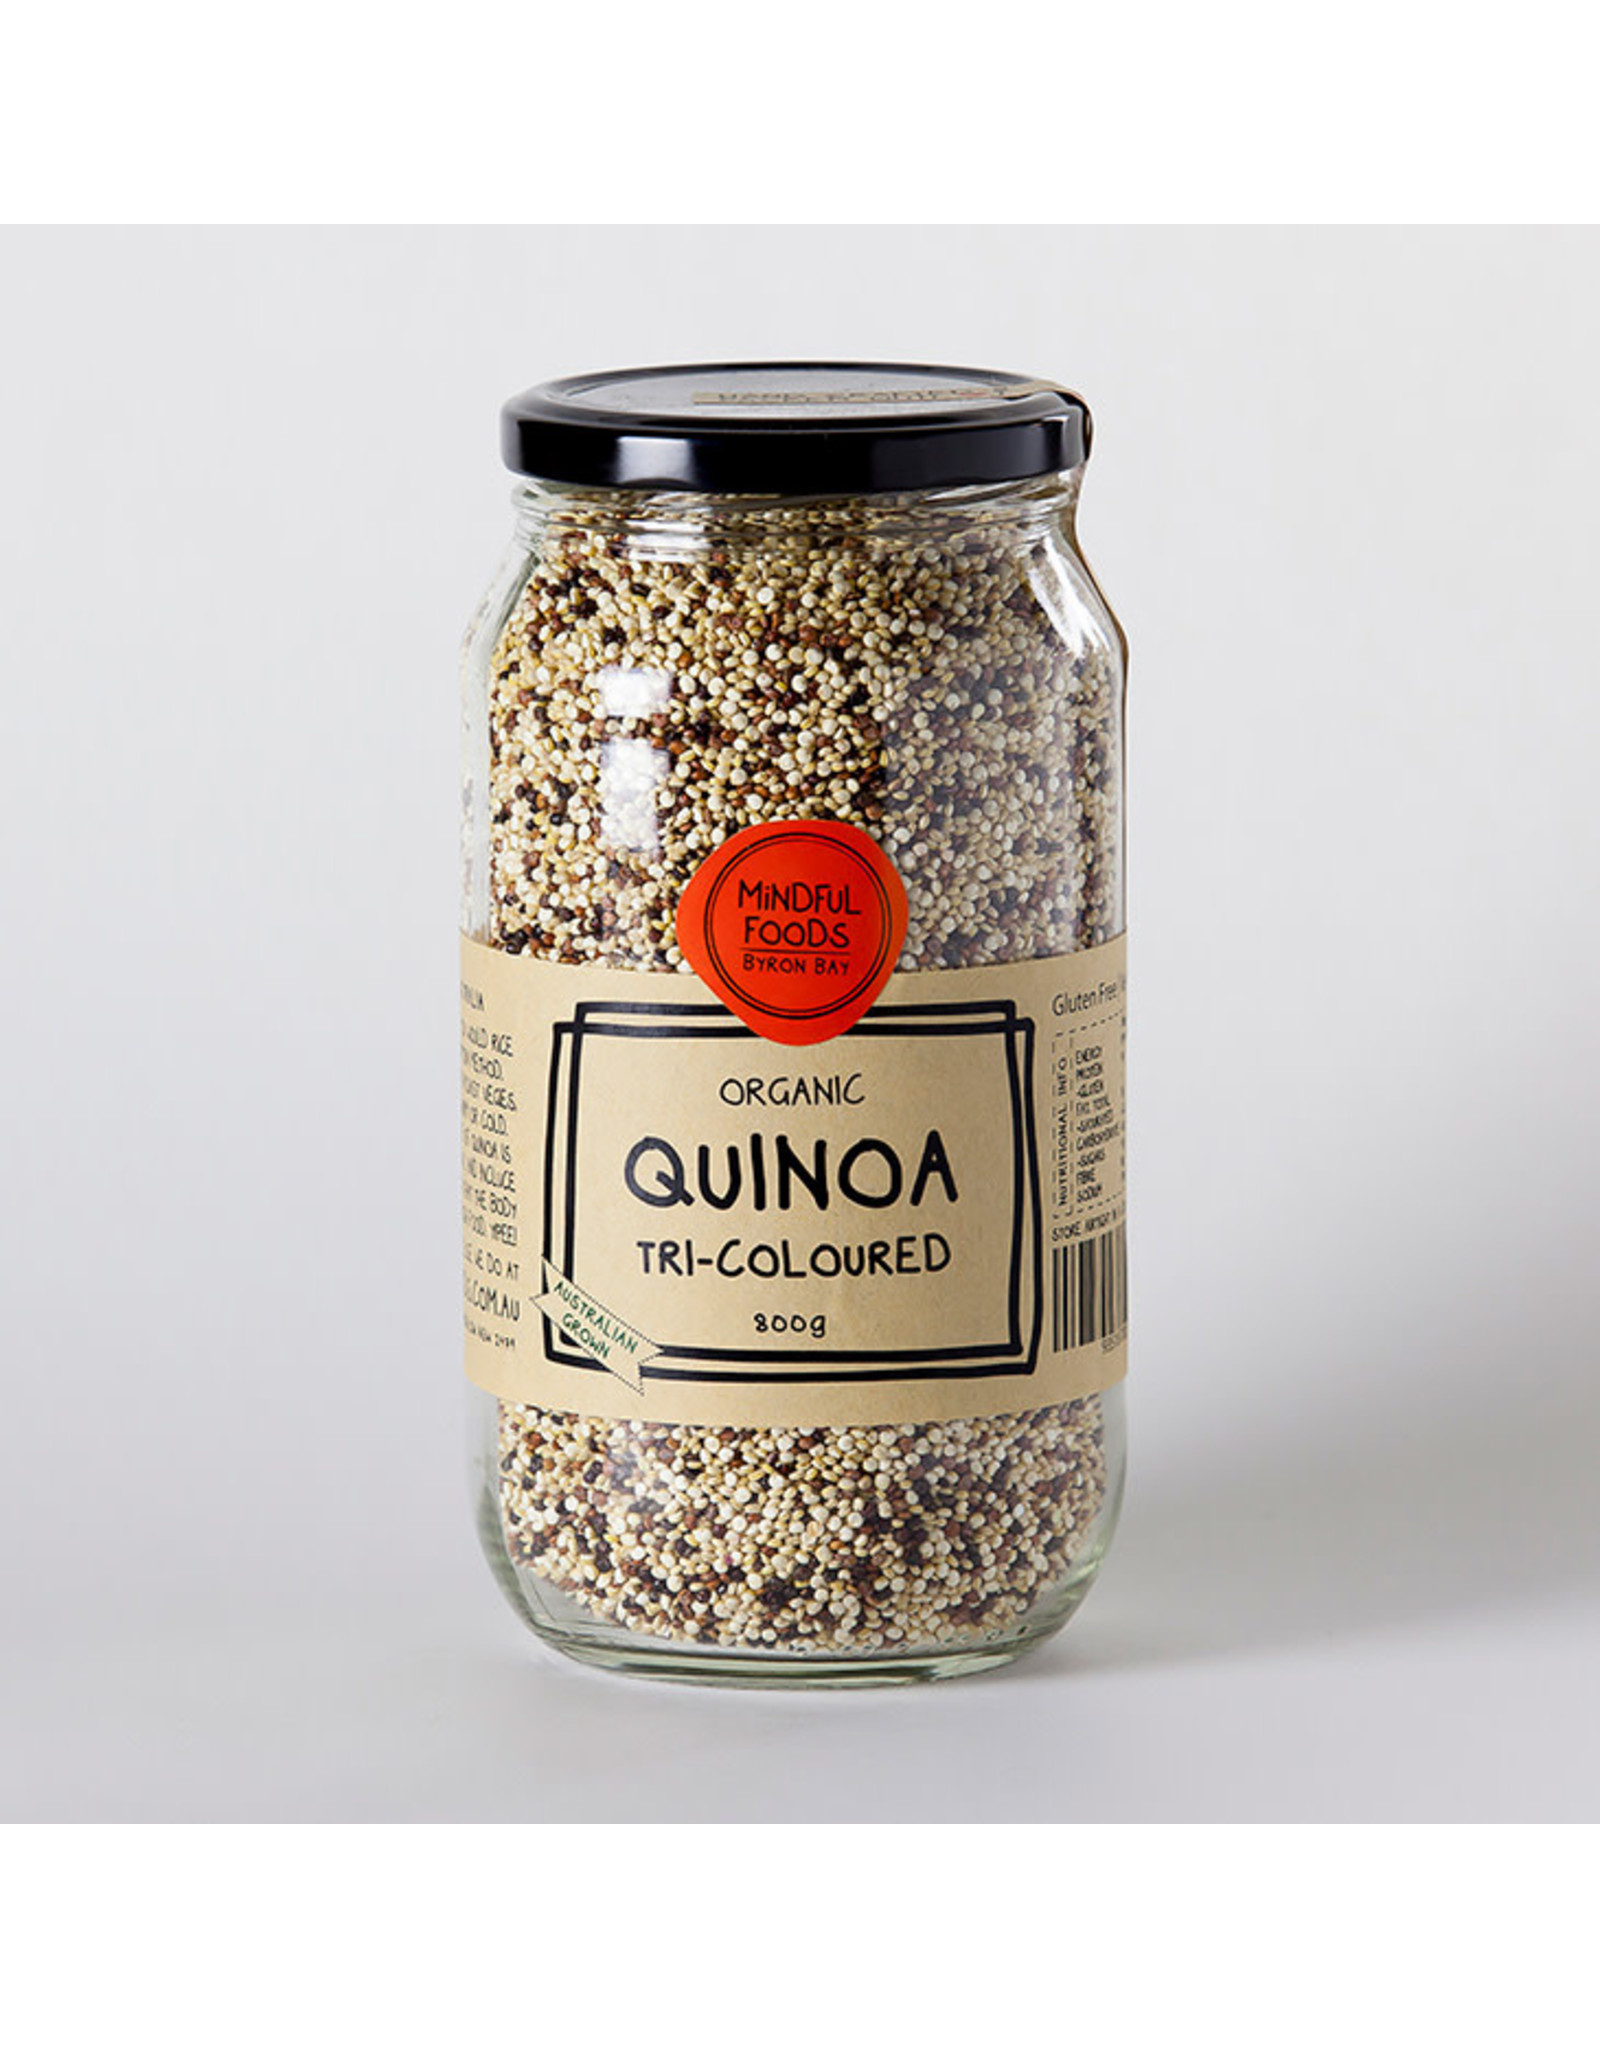 Summerhill Pantry Quinoa Tri Coloured - Organic - 800g